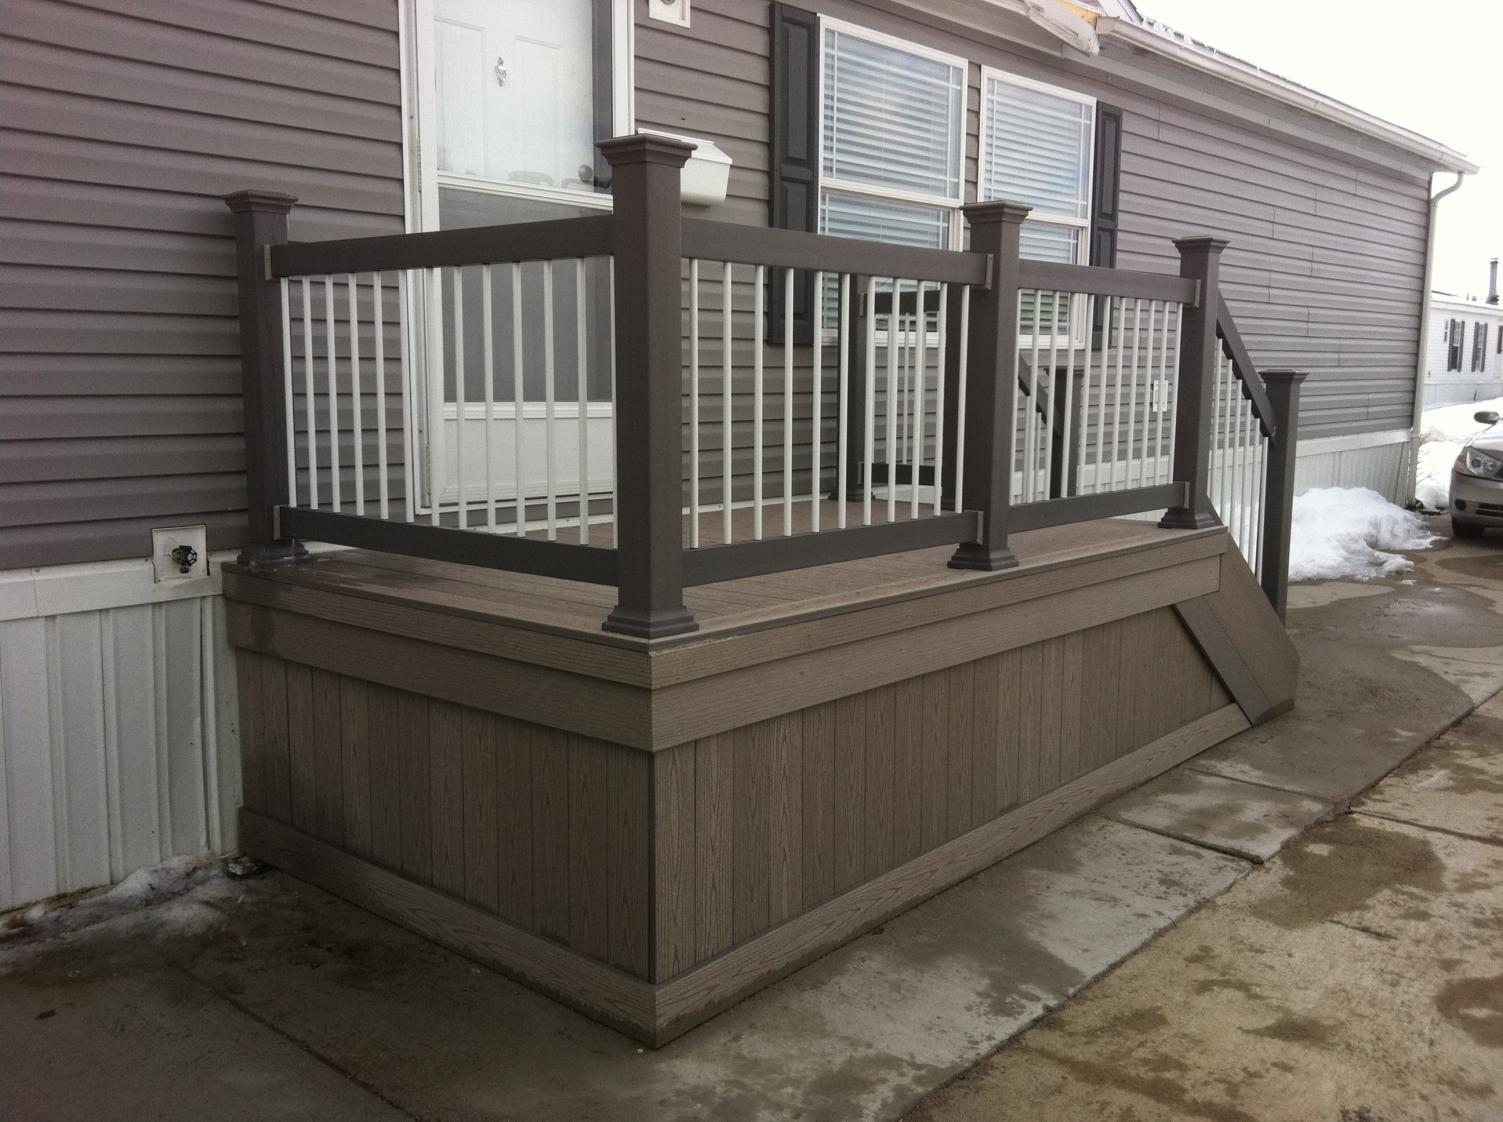 Railing Systems Home Depot | Veranda Composite Decking | Home Depot Veranda Decking